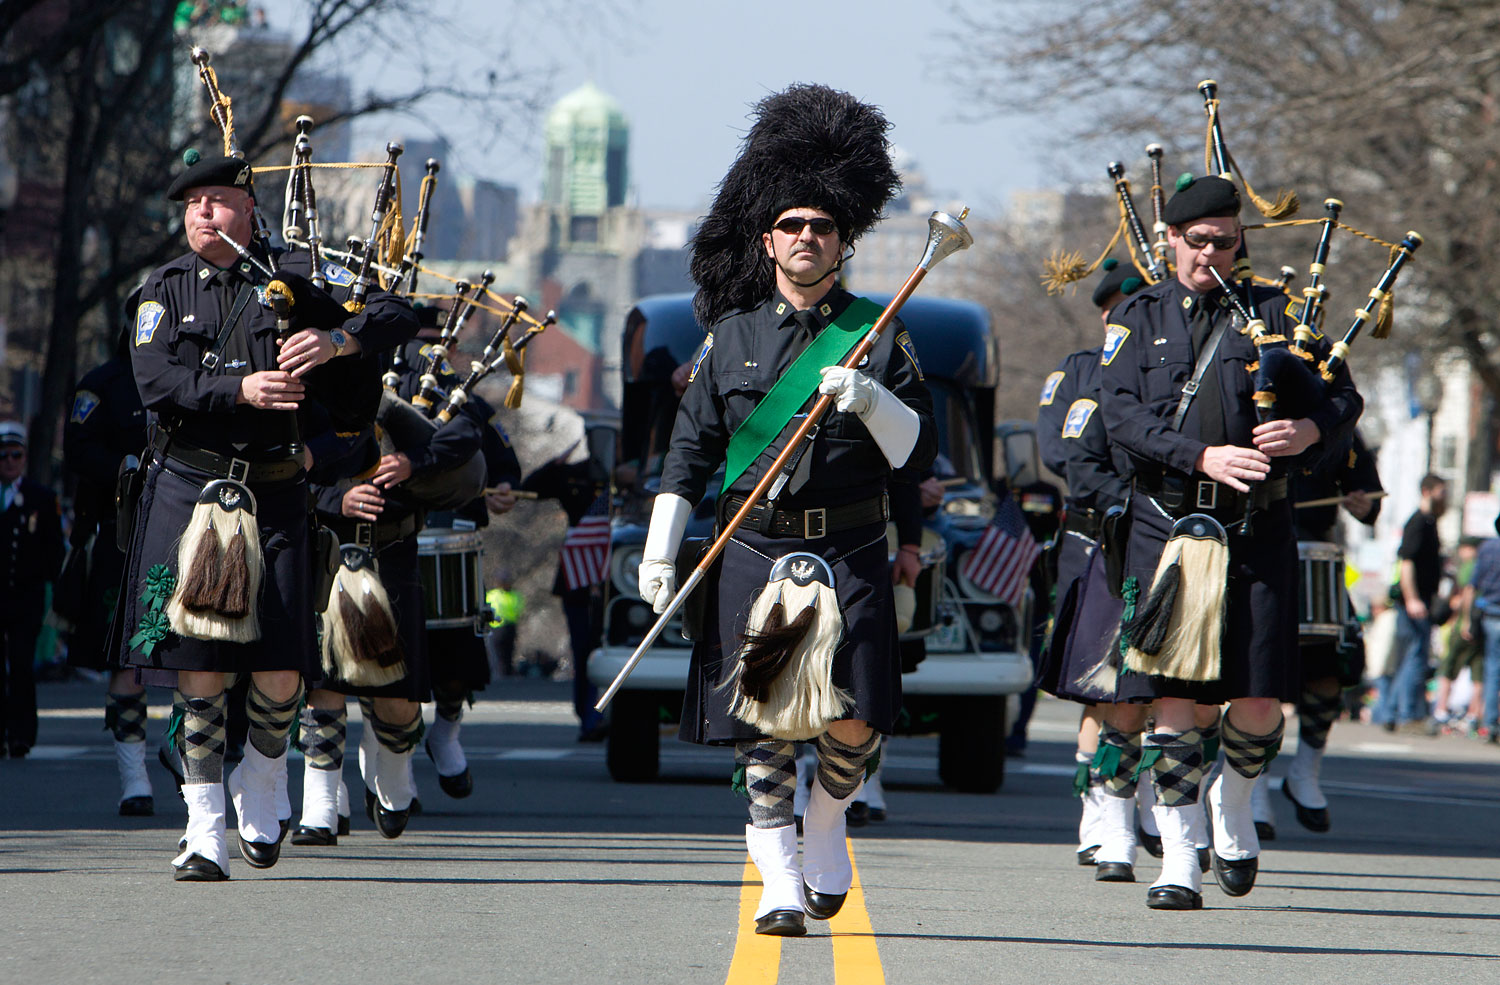 The Boston Police Gaelic Column marches in the annual St. Patrick's Day Parade in Boston,March 18, 2012.